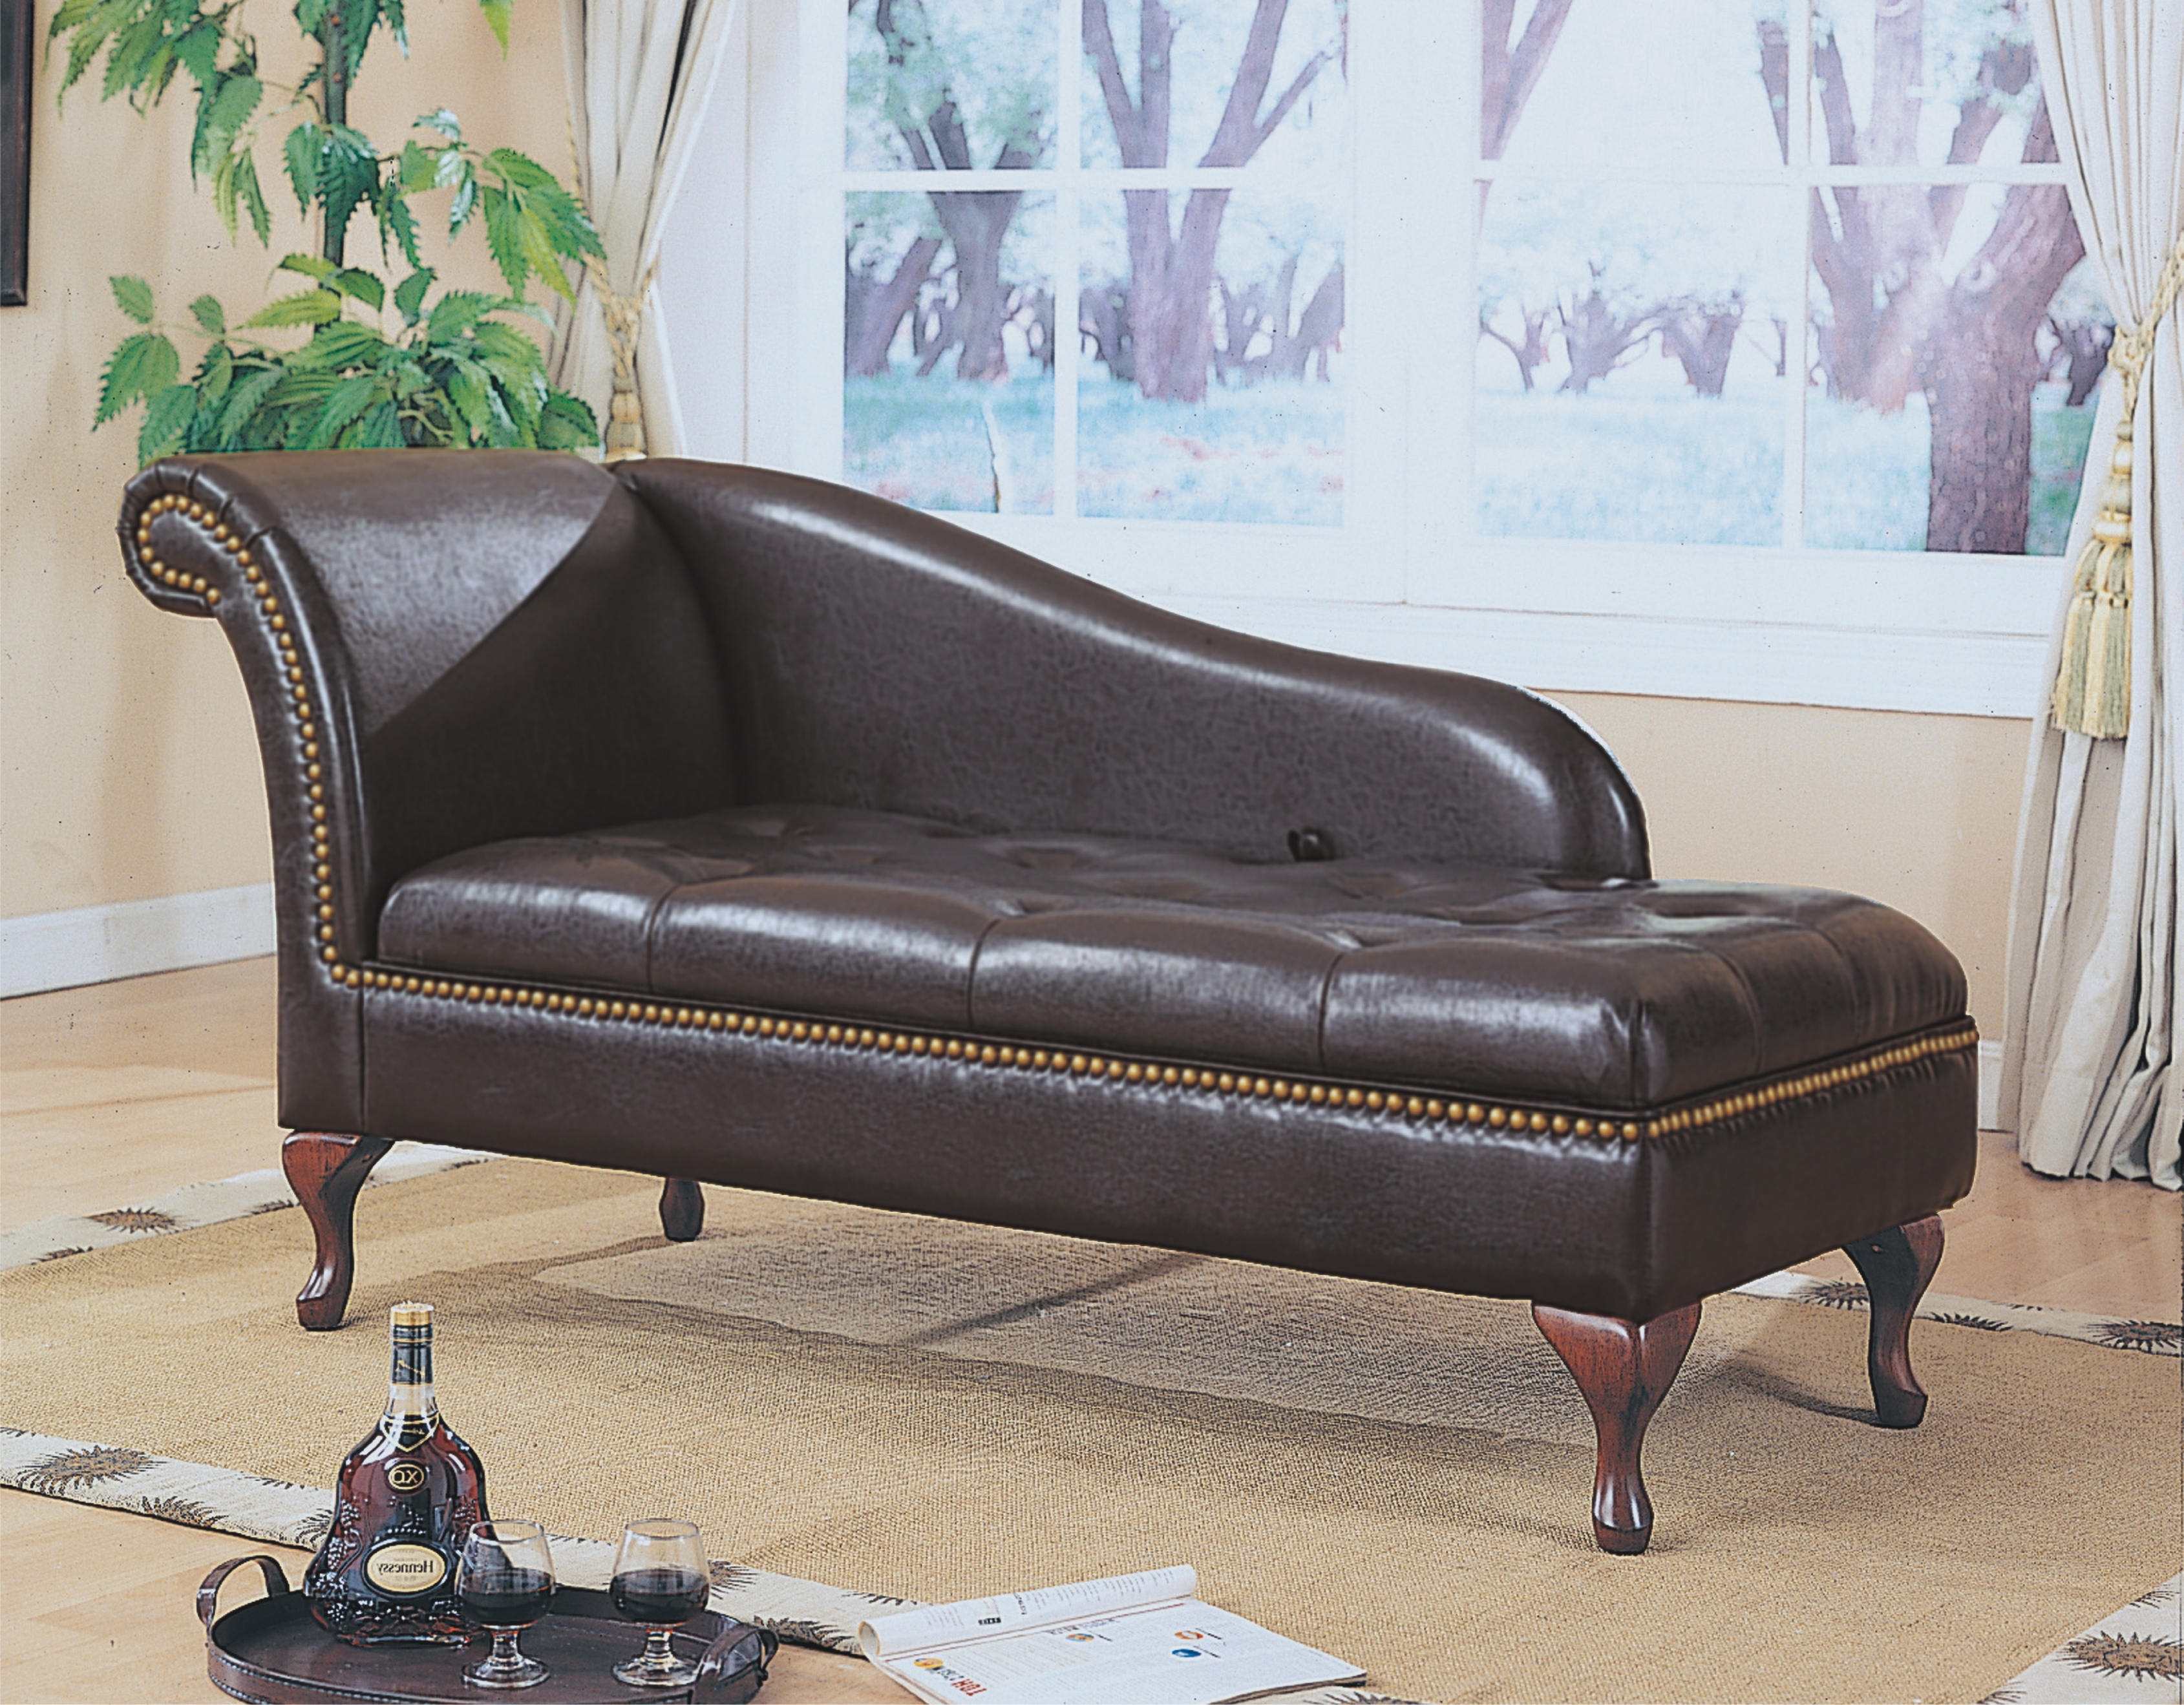 Preferred Dark Brown Leather Sofa Chaise Lounge With Curving Headboard And In Brown Leather Chaise Lounges (View 3 of 15)